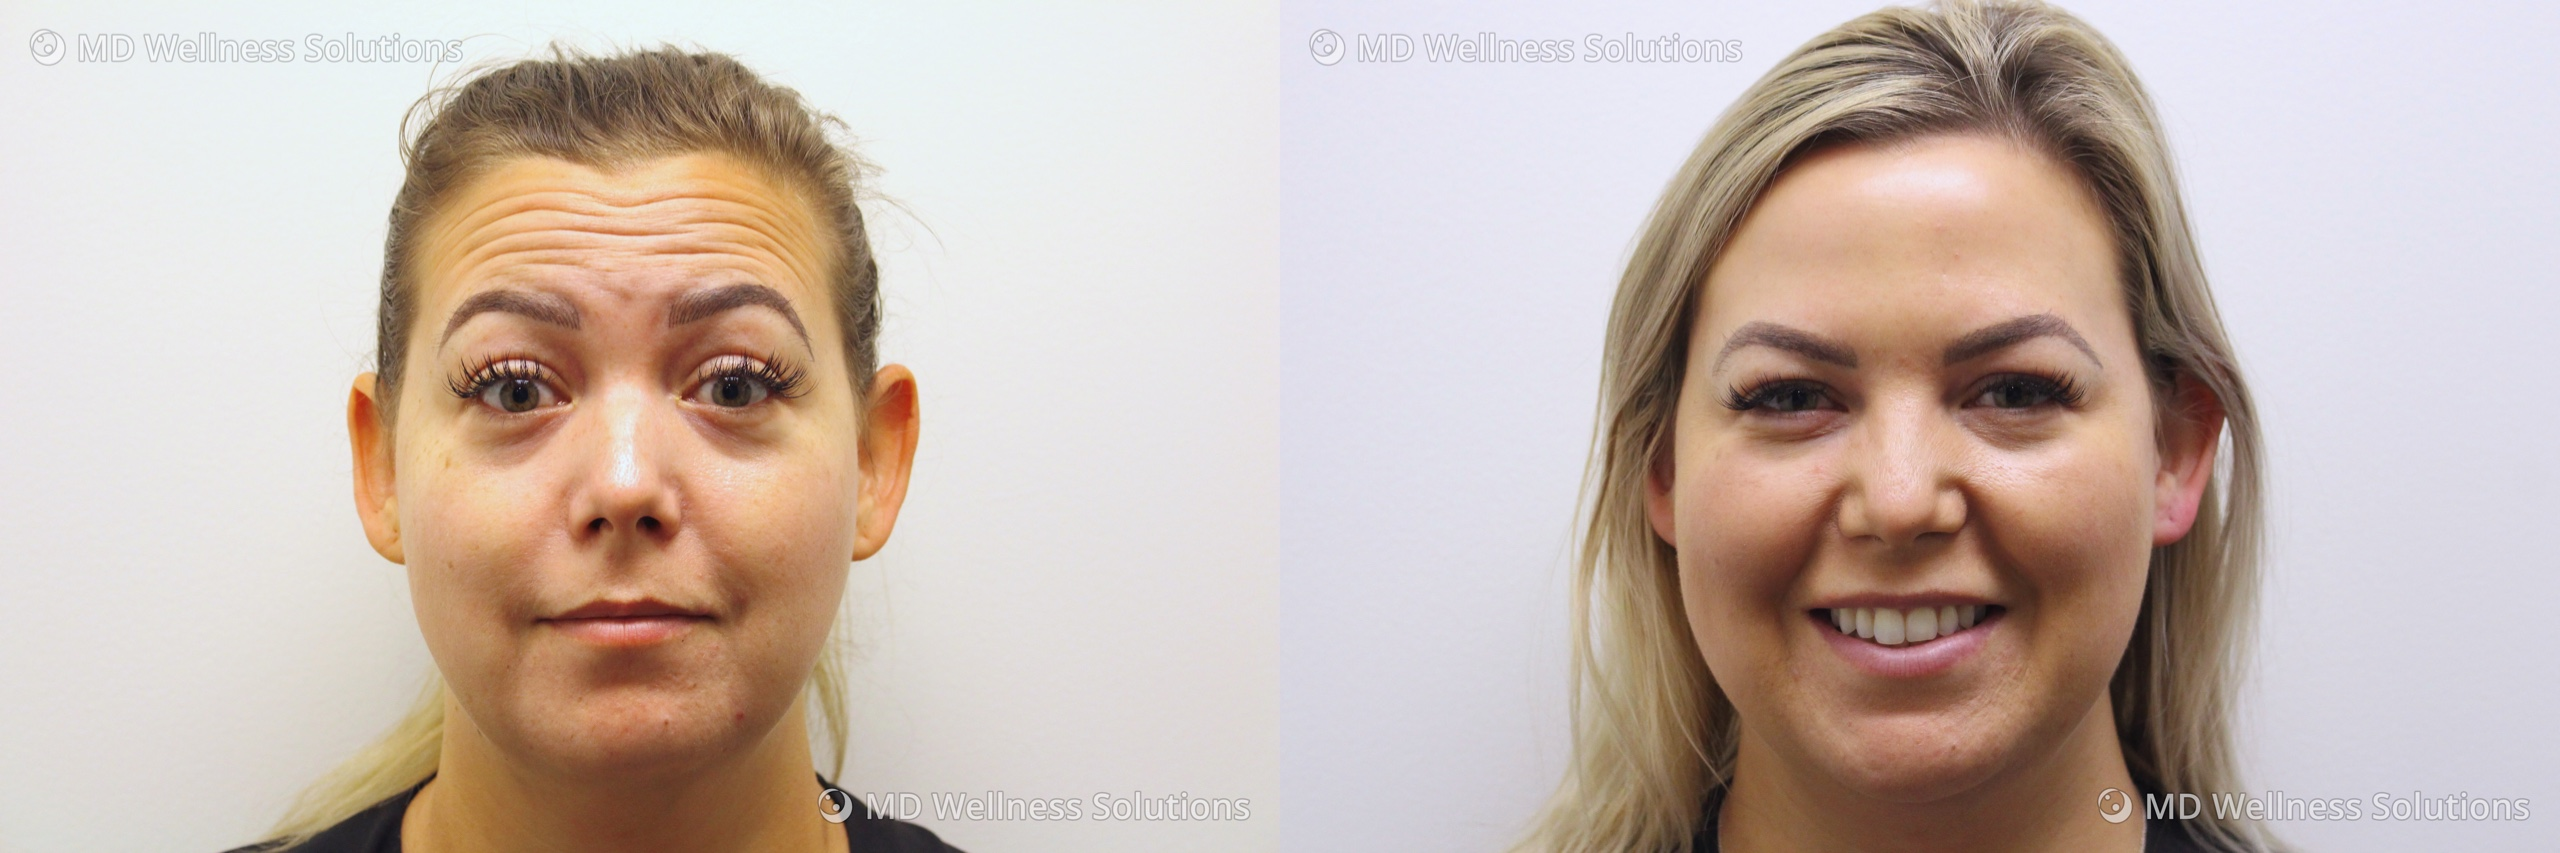 35-44 year old woman before and after neurotoxin treatment